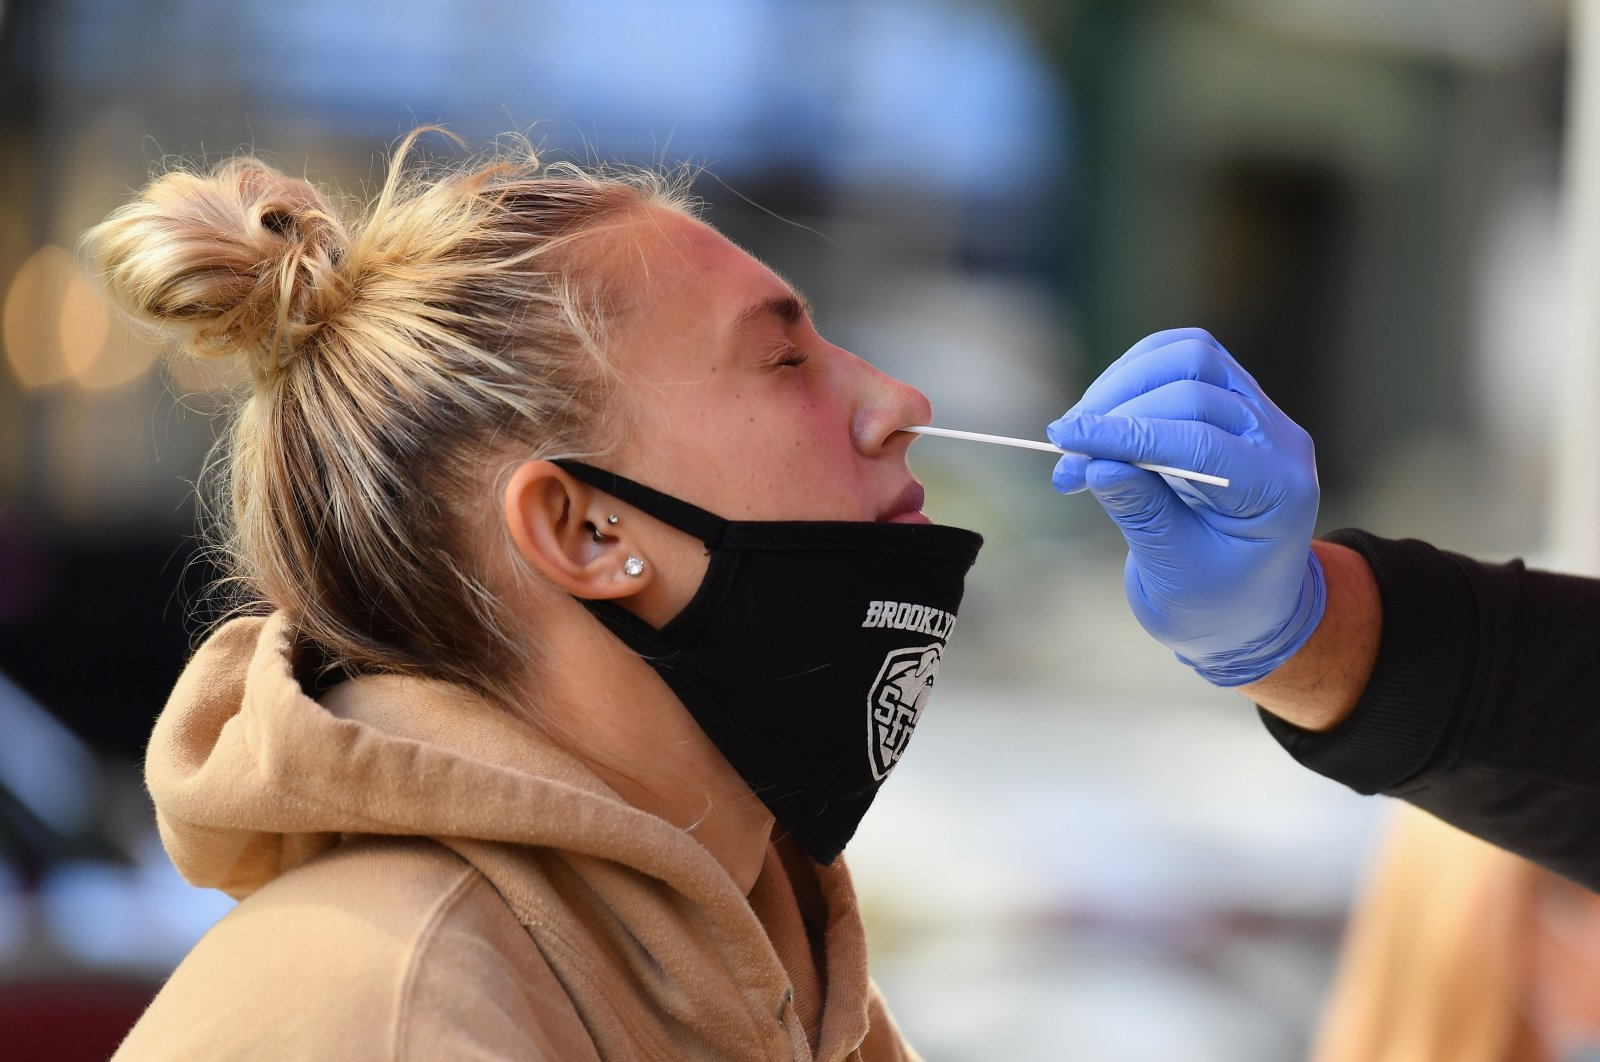 A medical worker takes a nasal swab sample from a student to test for COVID-19 at the Brooklyn Health Medical Alliance urgent care pop-up testing site as infection rates spike in New York City, U.S., Oct. 8, 2020. (AFP Photo)